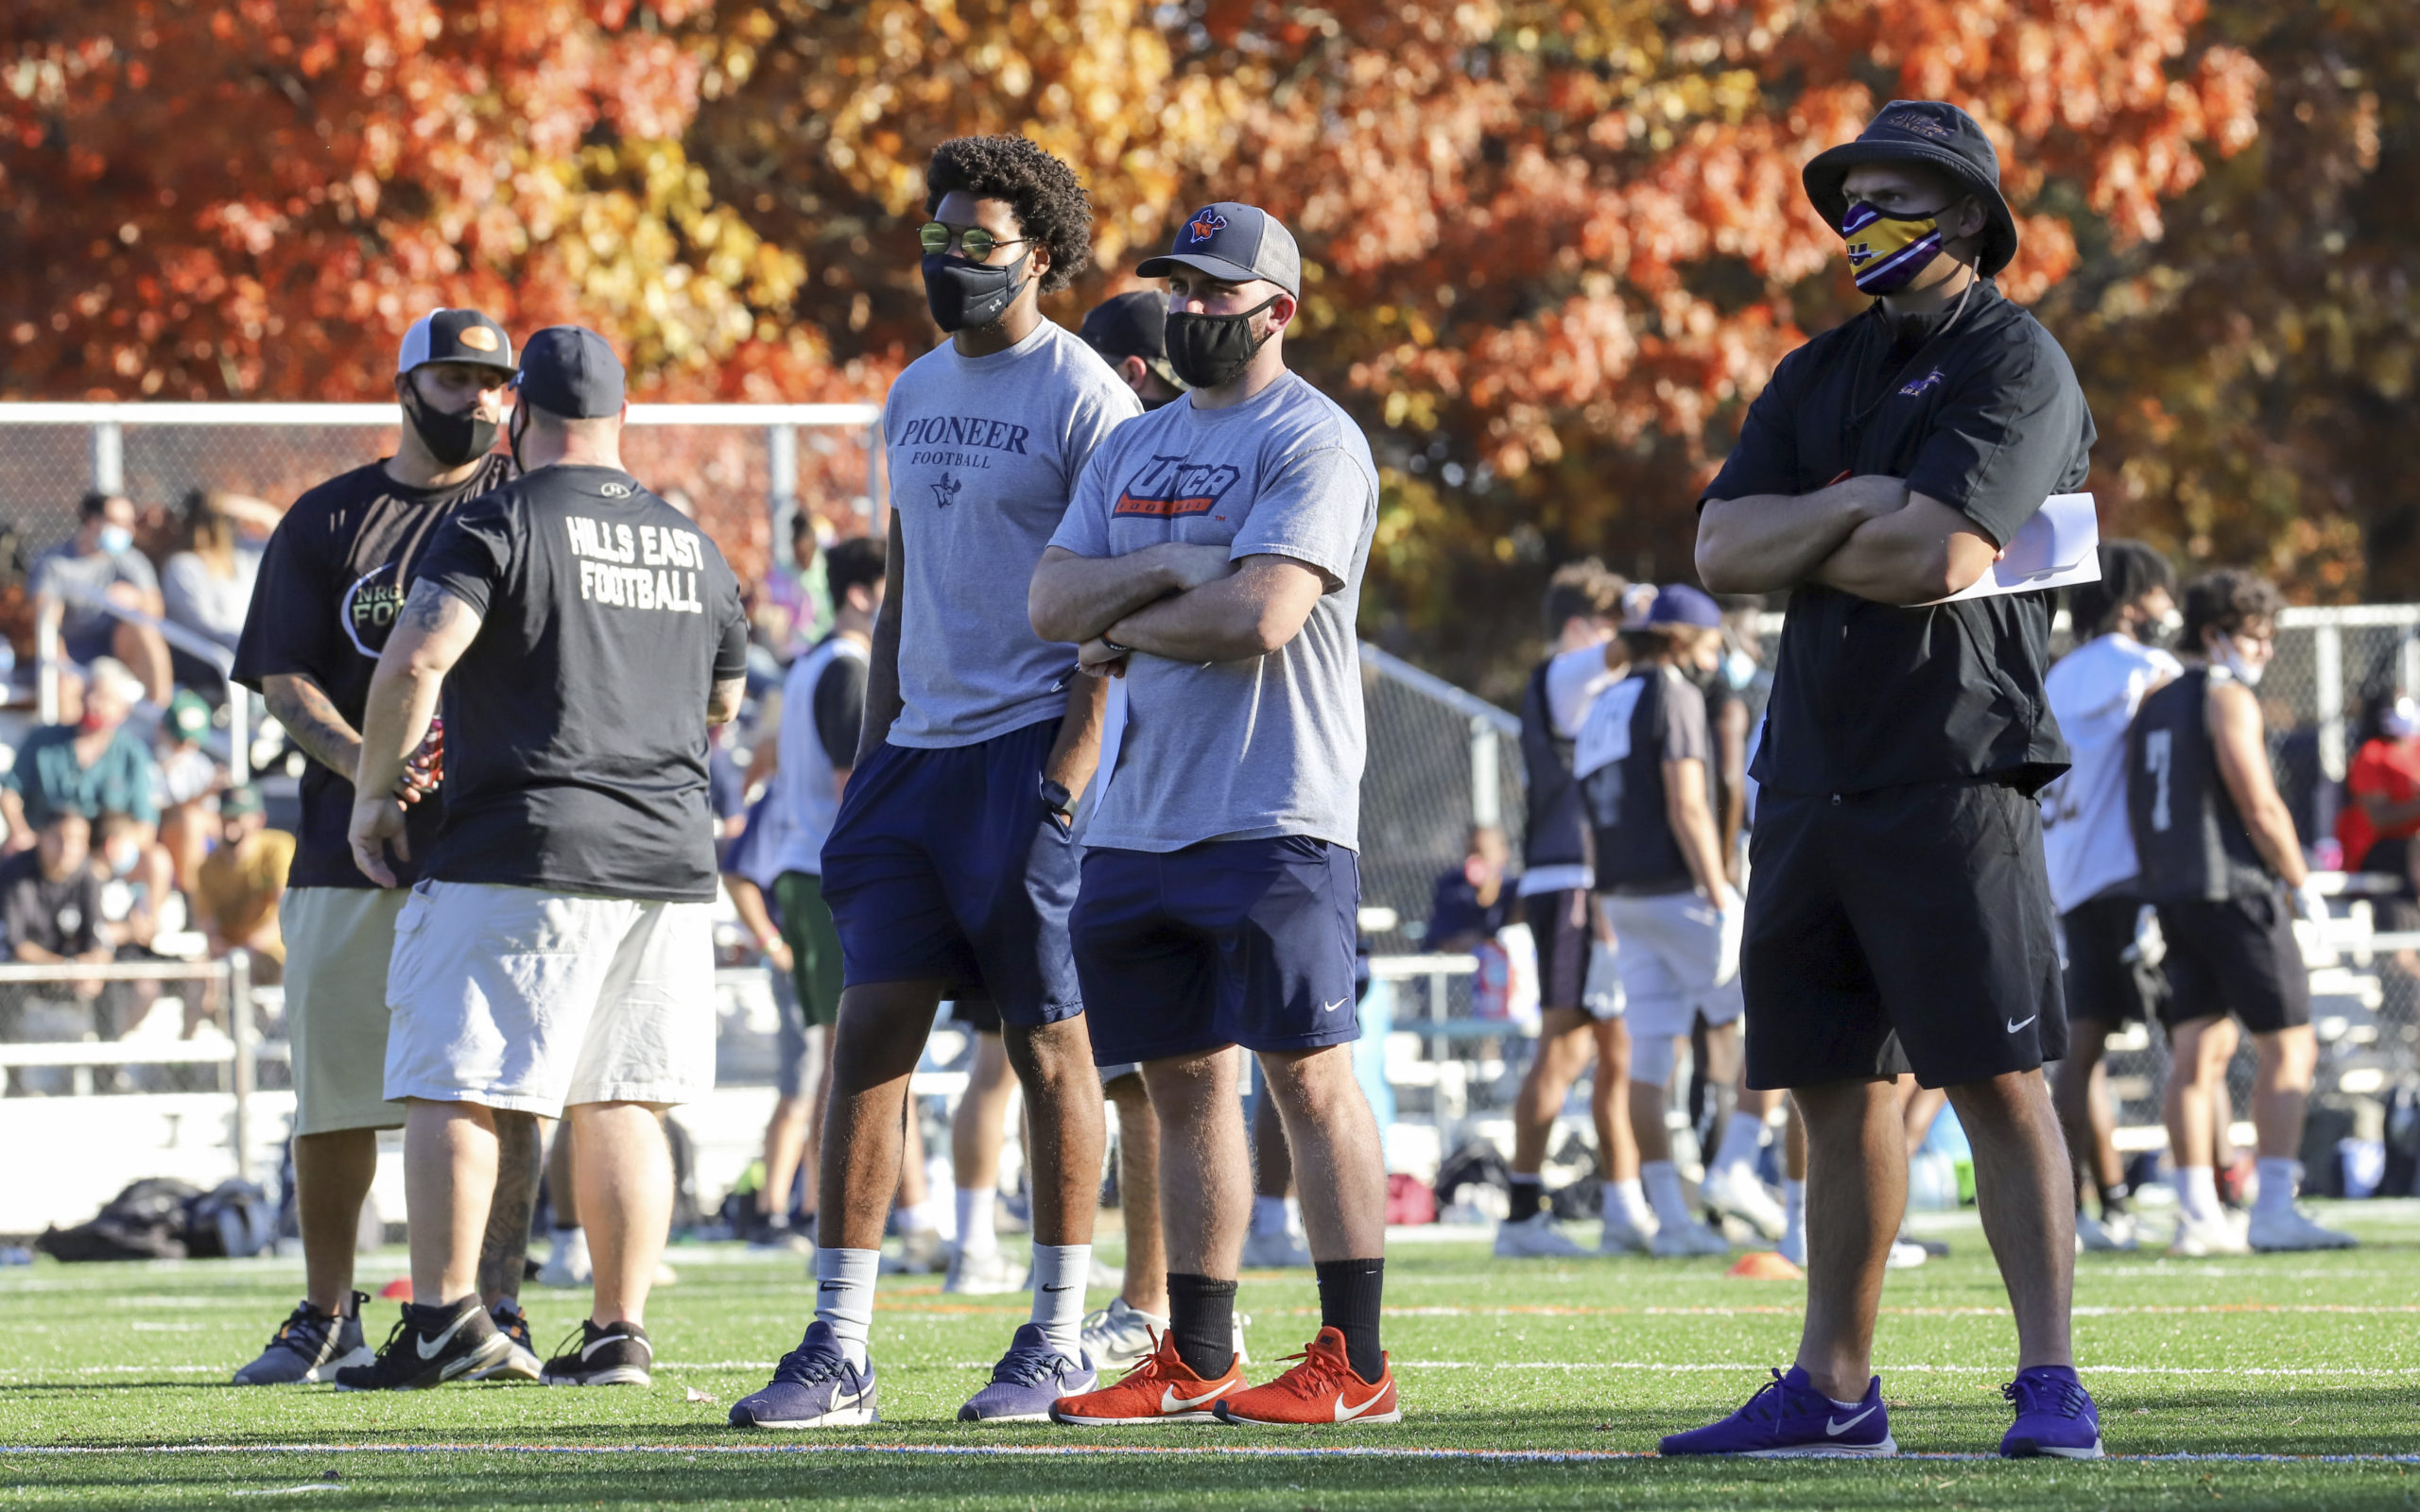 Utica College coaches Nick Woodman, the assistant coach, and Antonio Scala, the assistant coach of linebackers, and Alfred University special teams coordinator and defensive backs coach Holden Whitehead scout players during the Suffolk County Football Coaches Association's seventh annual showcase November 8.   CHRISTINE HEEREN